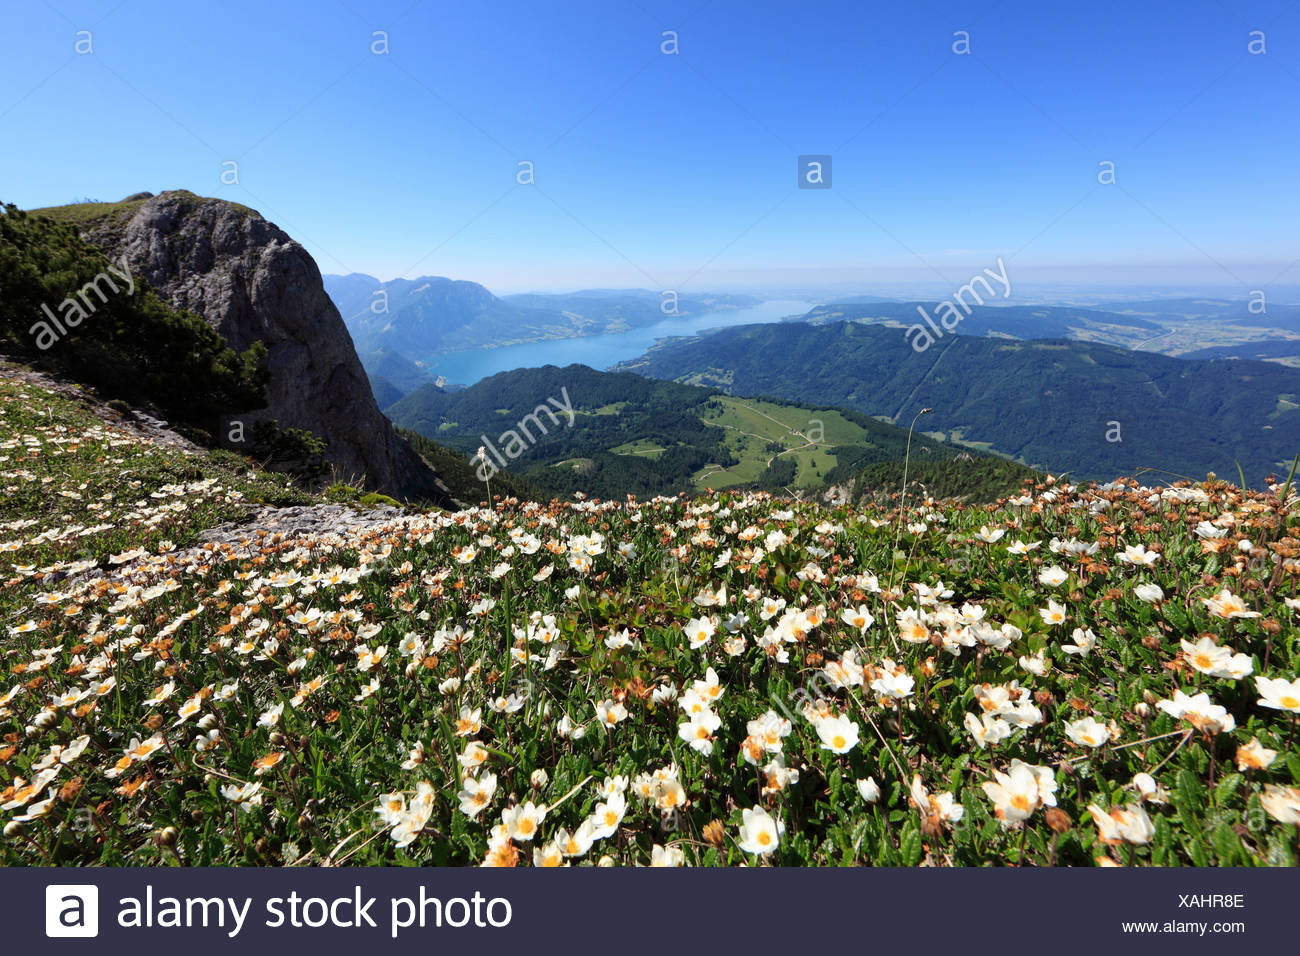 White dryas (Dryas octopetala), Schafberg mountain, in the back Attersee lake, Salzkammergut region, Land Salzburg state, Austr Stock Photo